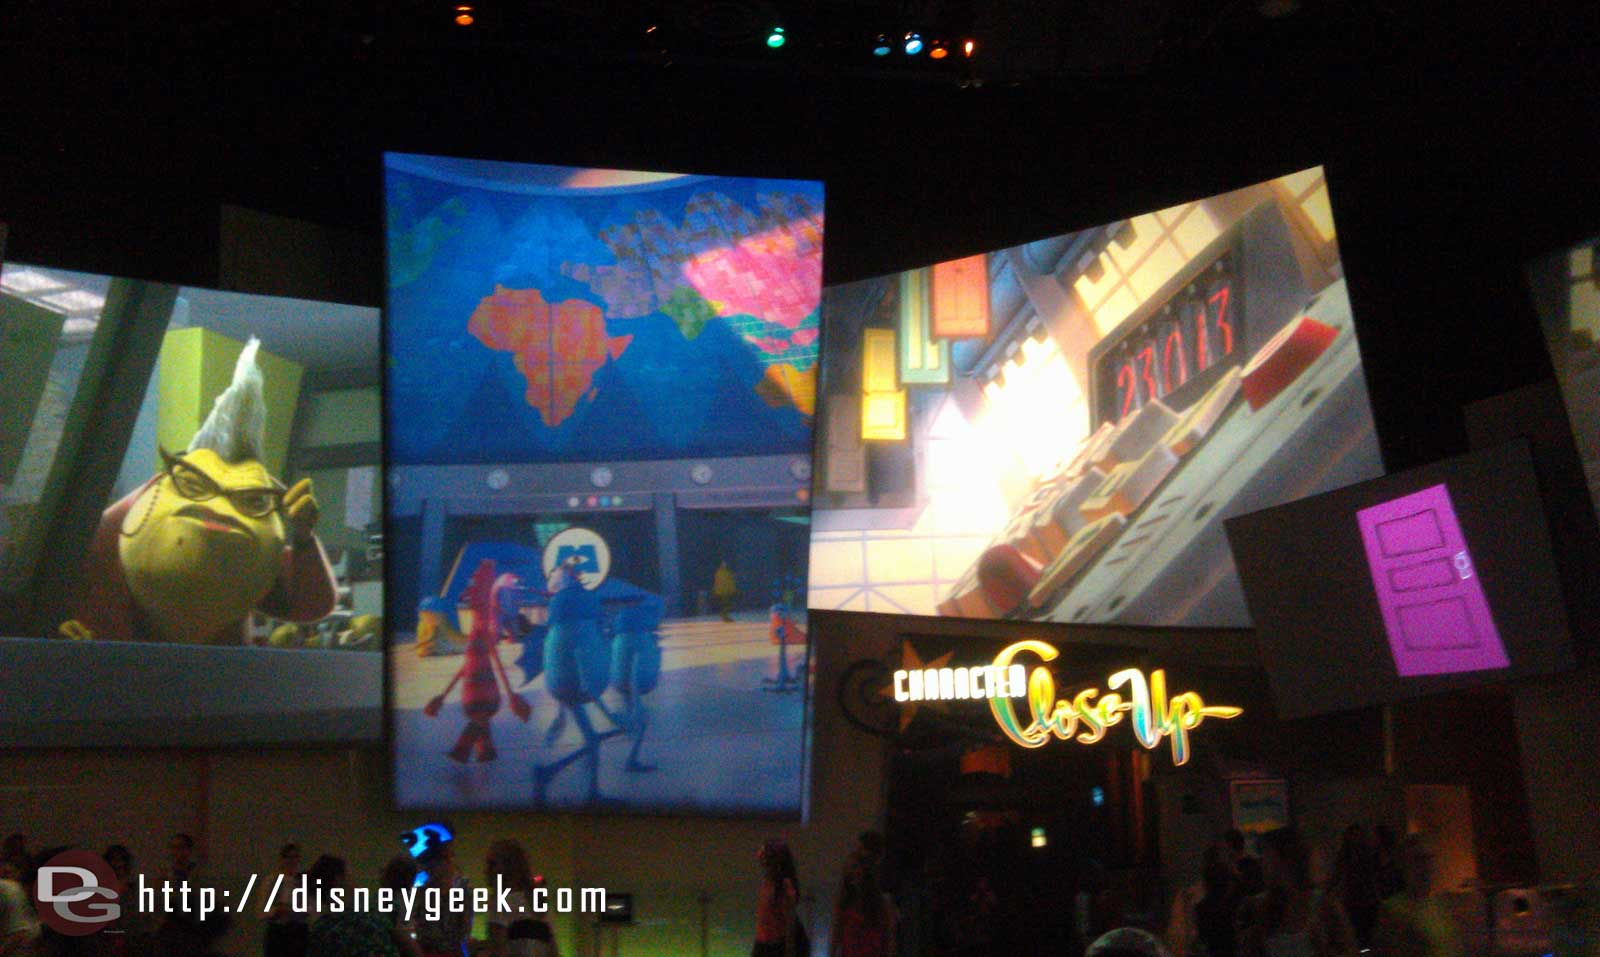 Monsters Inc in the Animation Lobby (this is old but just thought my timing was interesting)